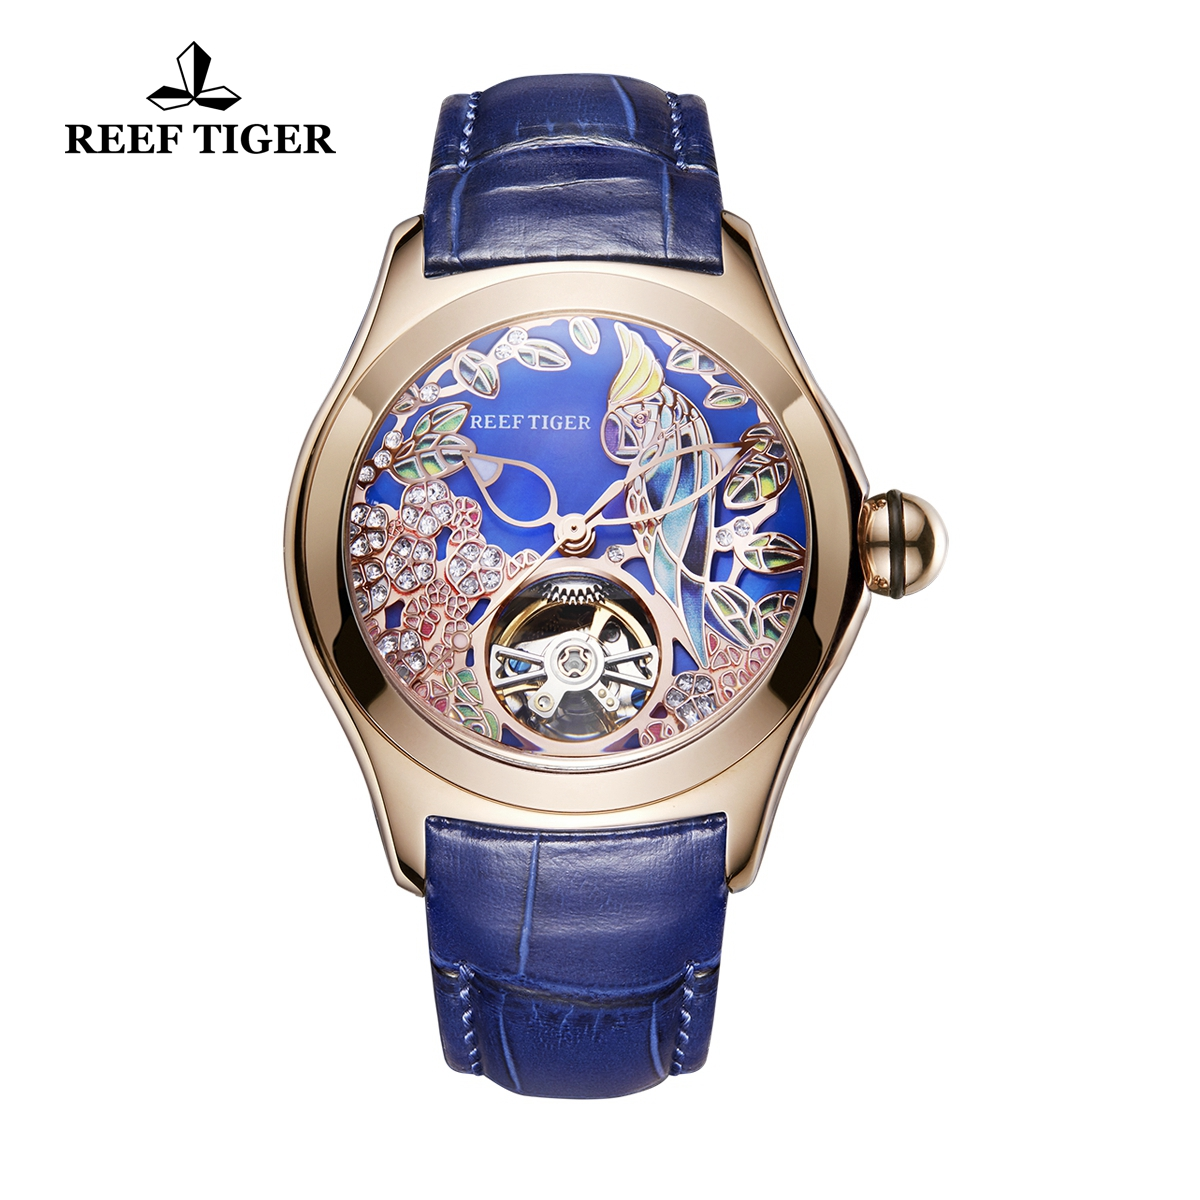 Reef Tiger Aurora Parrot Casual Watches Automatic Watch Rose Gold Case Leather Strap RGA7105-PLL